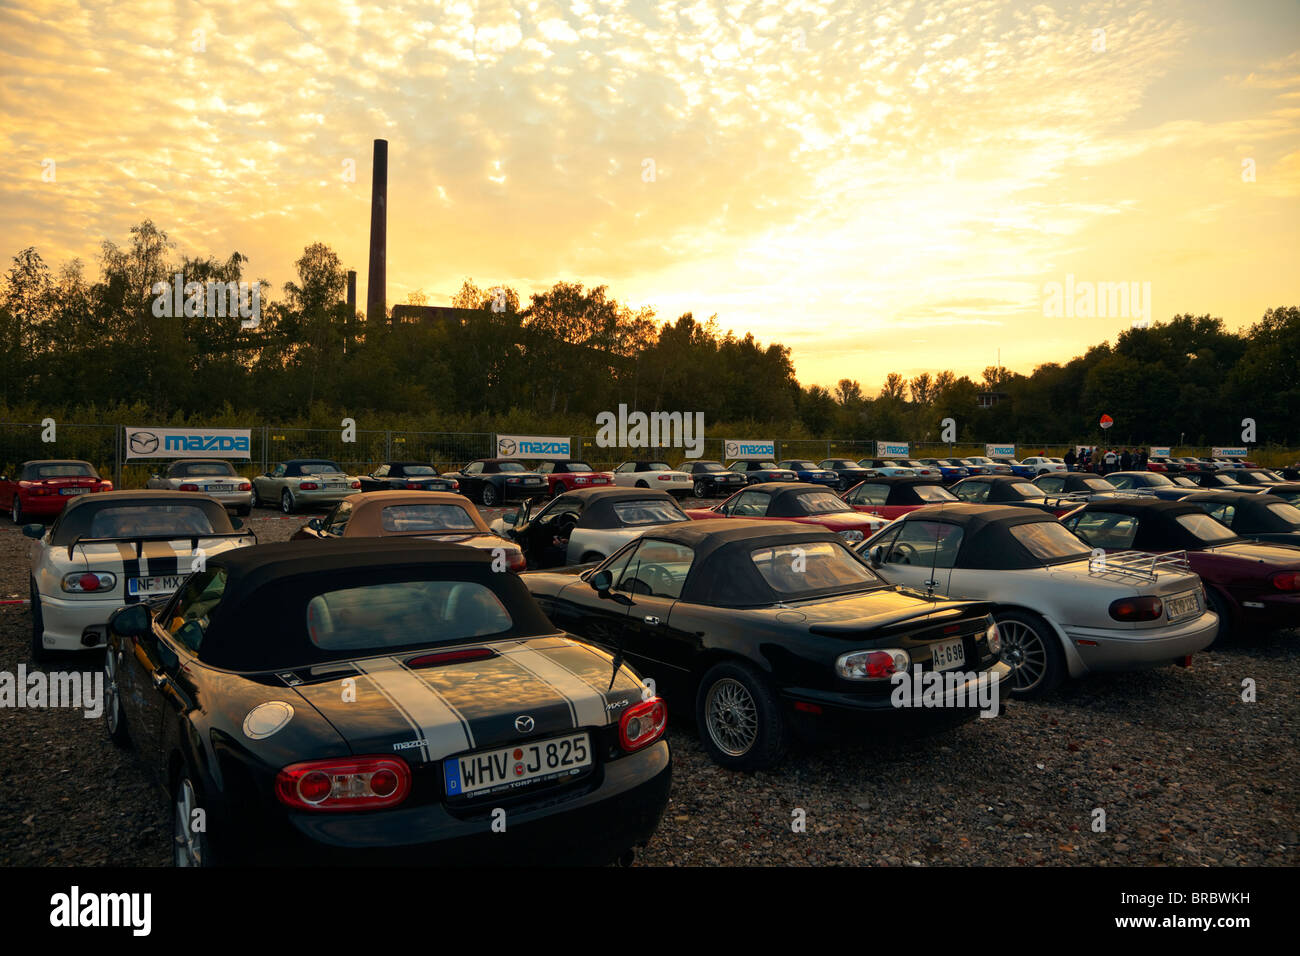 Mazda MX-5 cars parked at the 20th anniversary World Record corso event at Zeche Zollverein, Essen, Germany, September - Stock Image